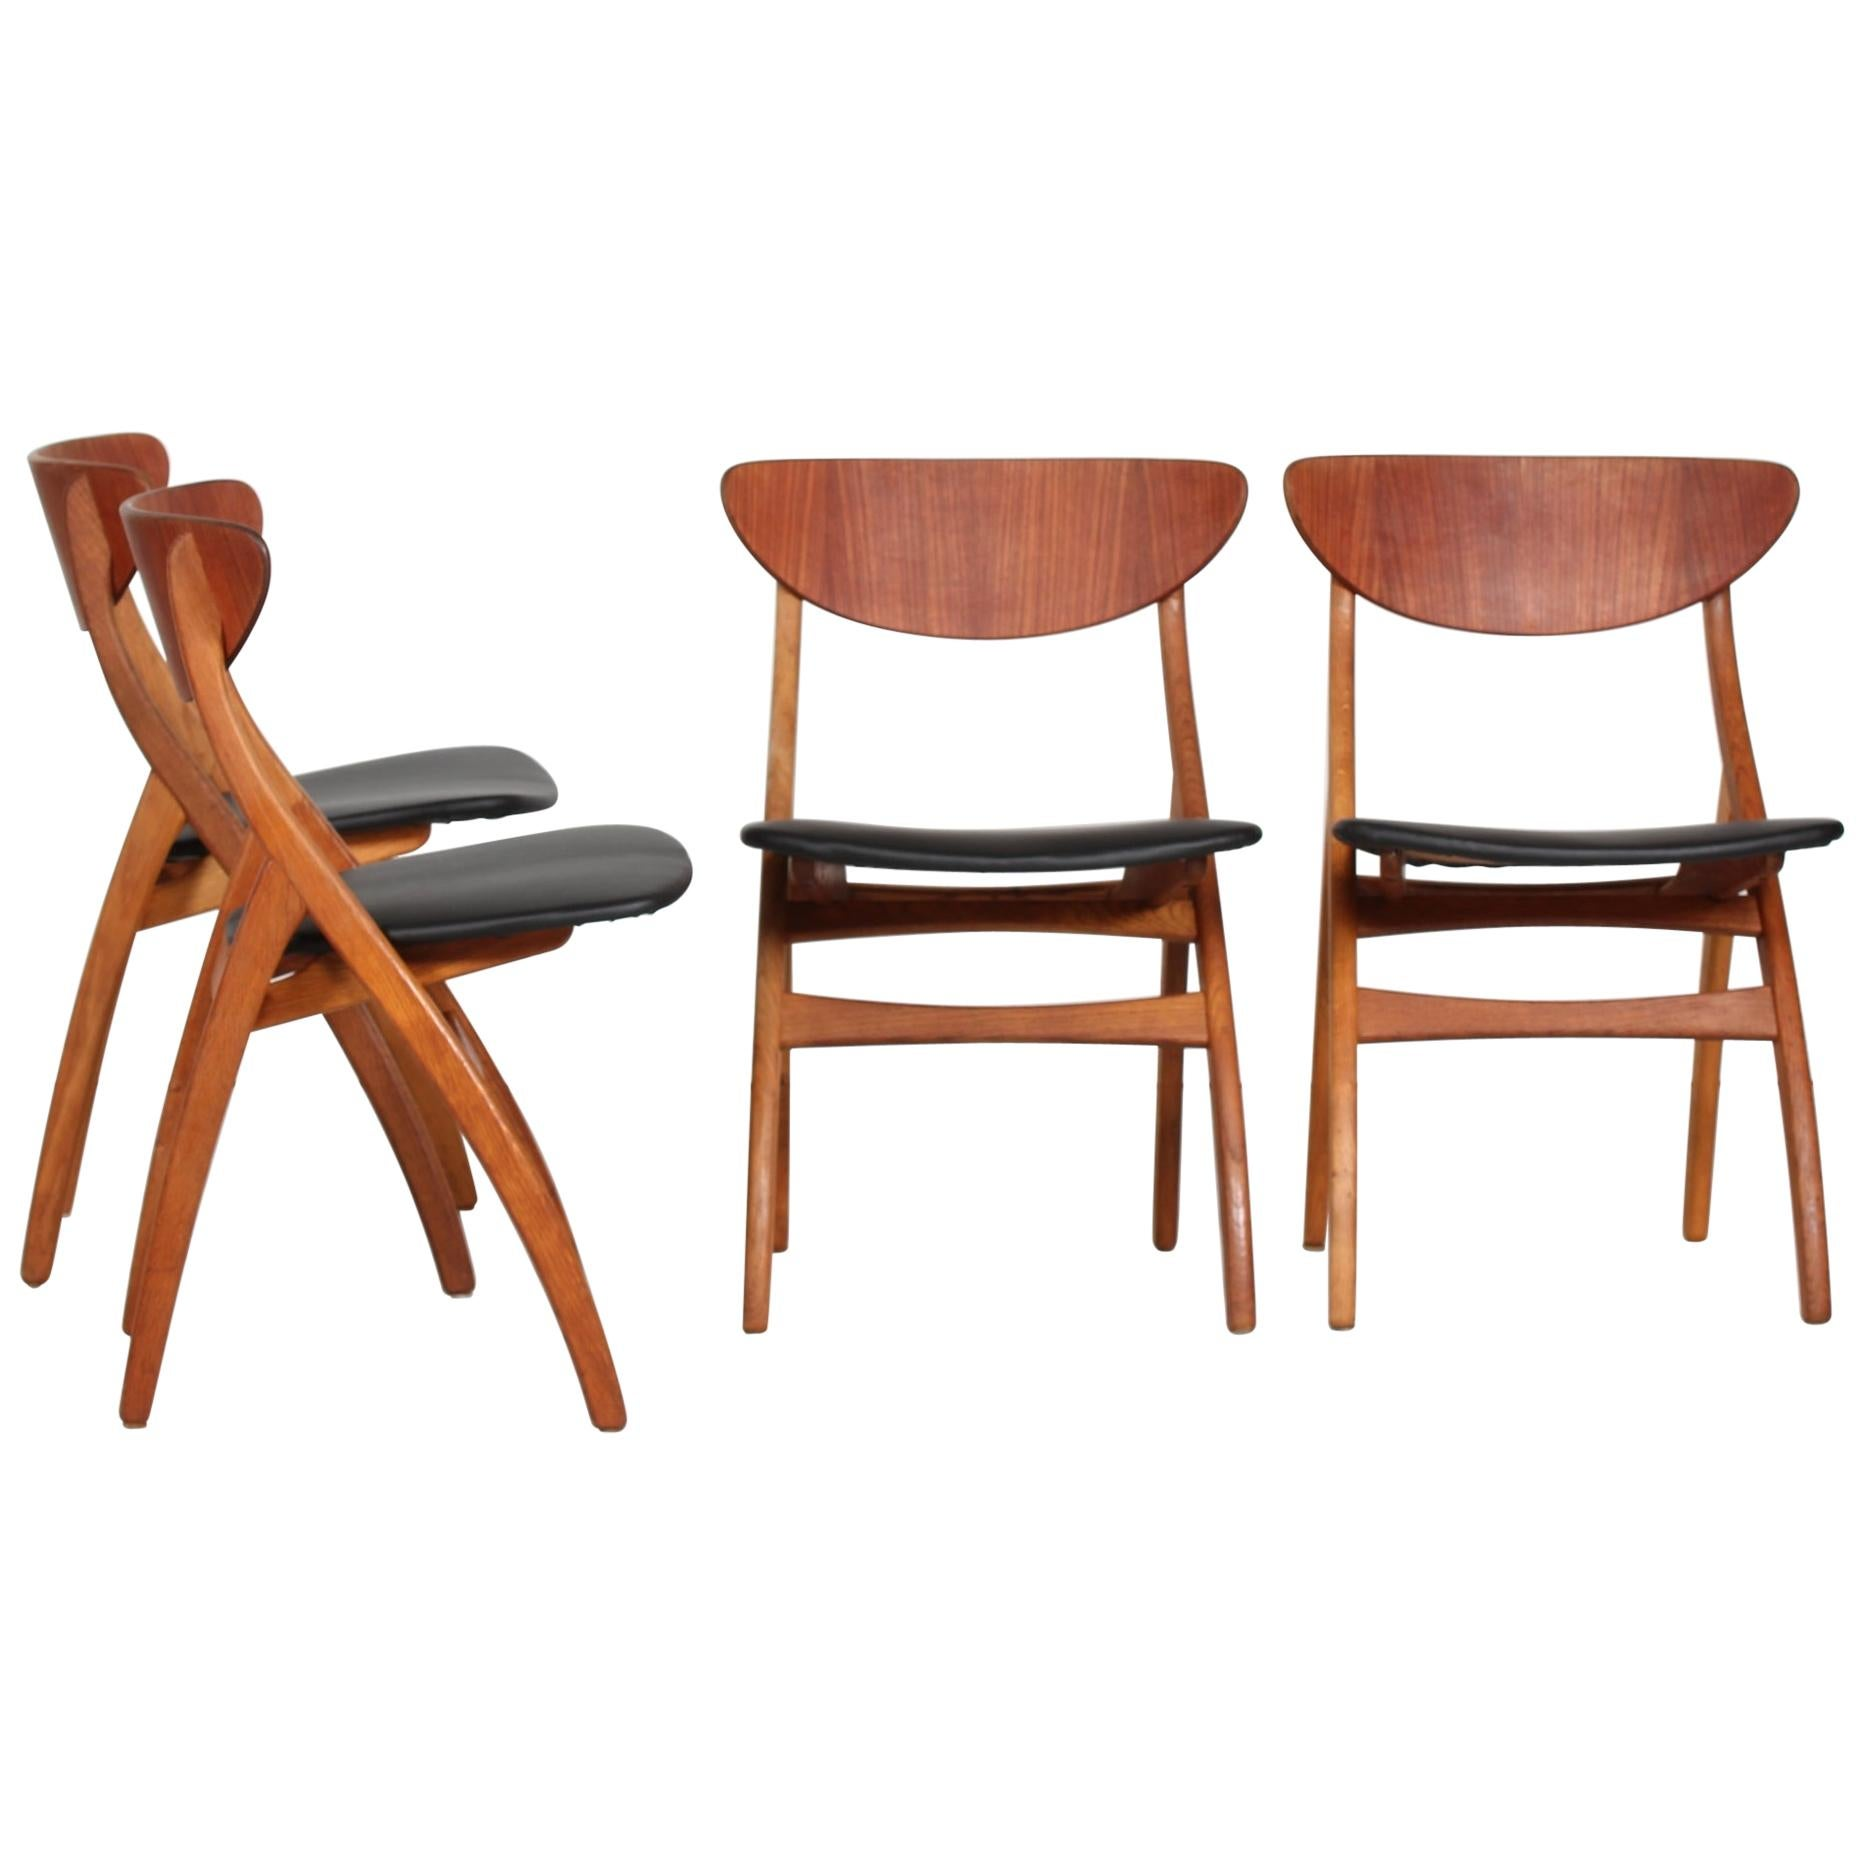 Danish Modern Set of Four Dining Room Chairs of Teak and Oak with Black Seats